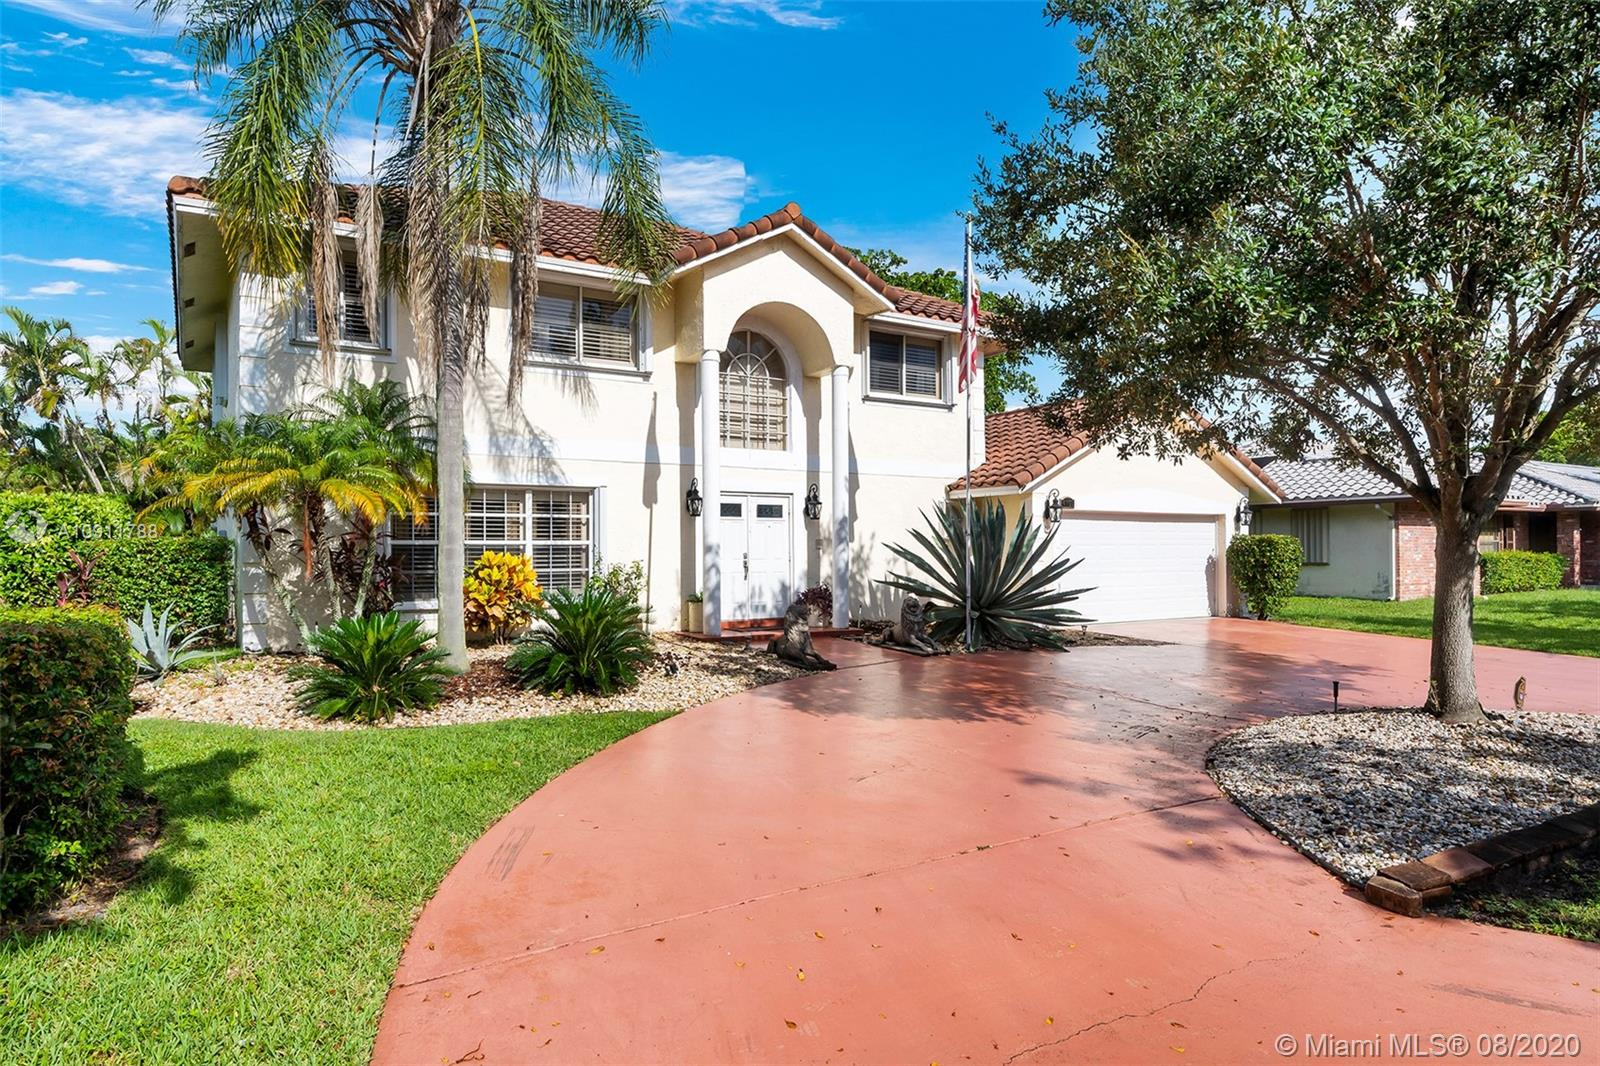 4957 NW 48th Ave, Coconut Creek FL 33073